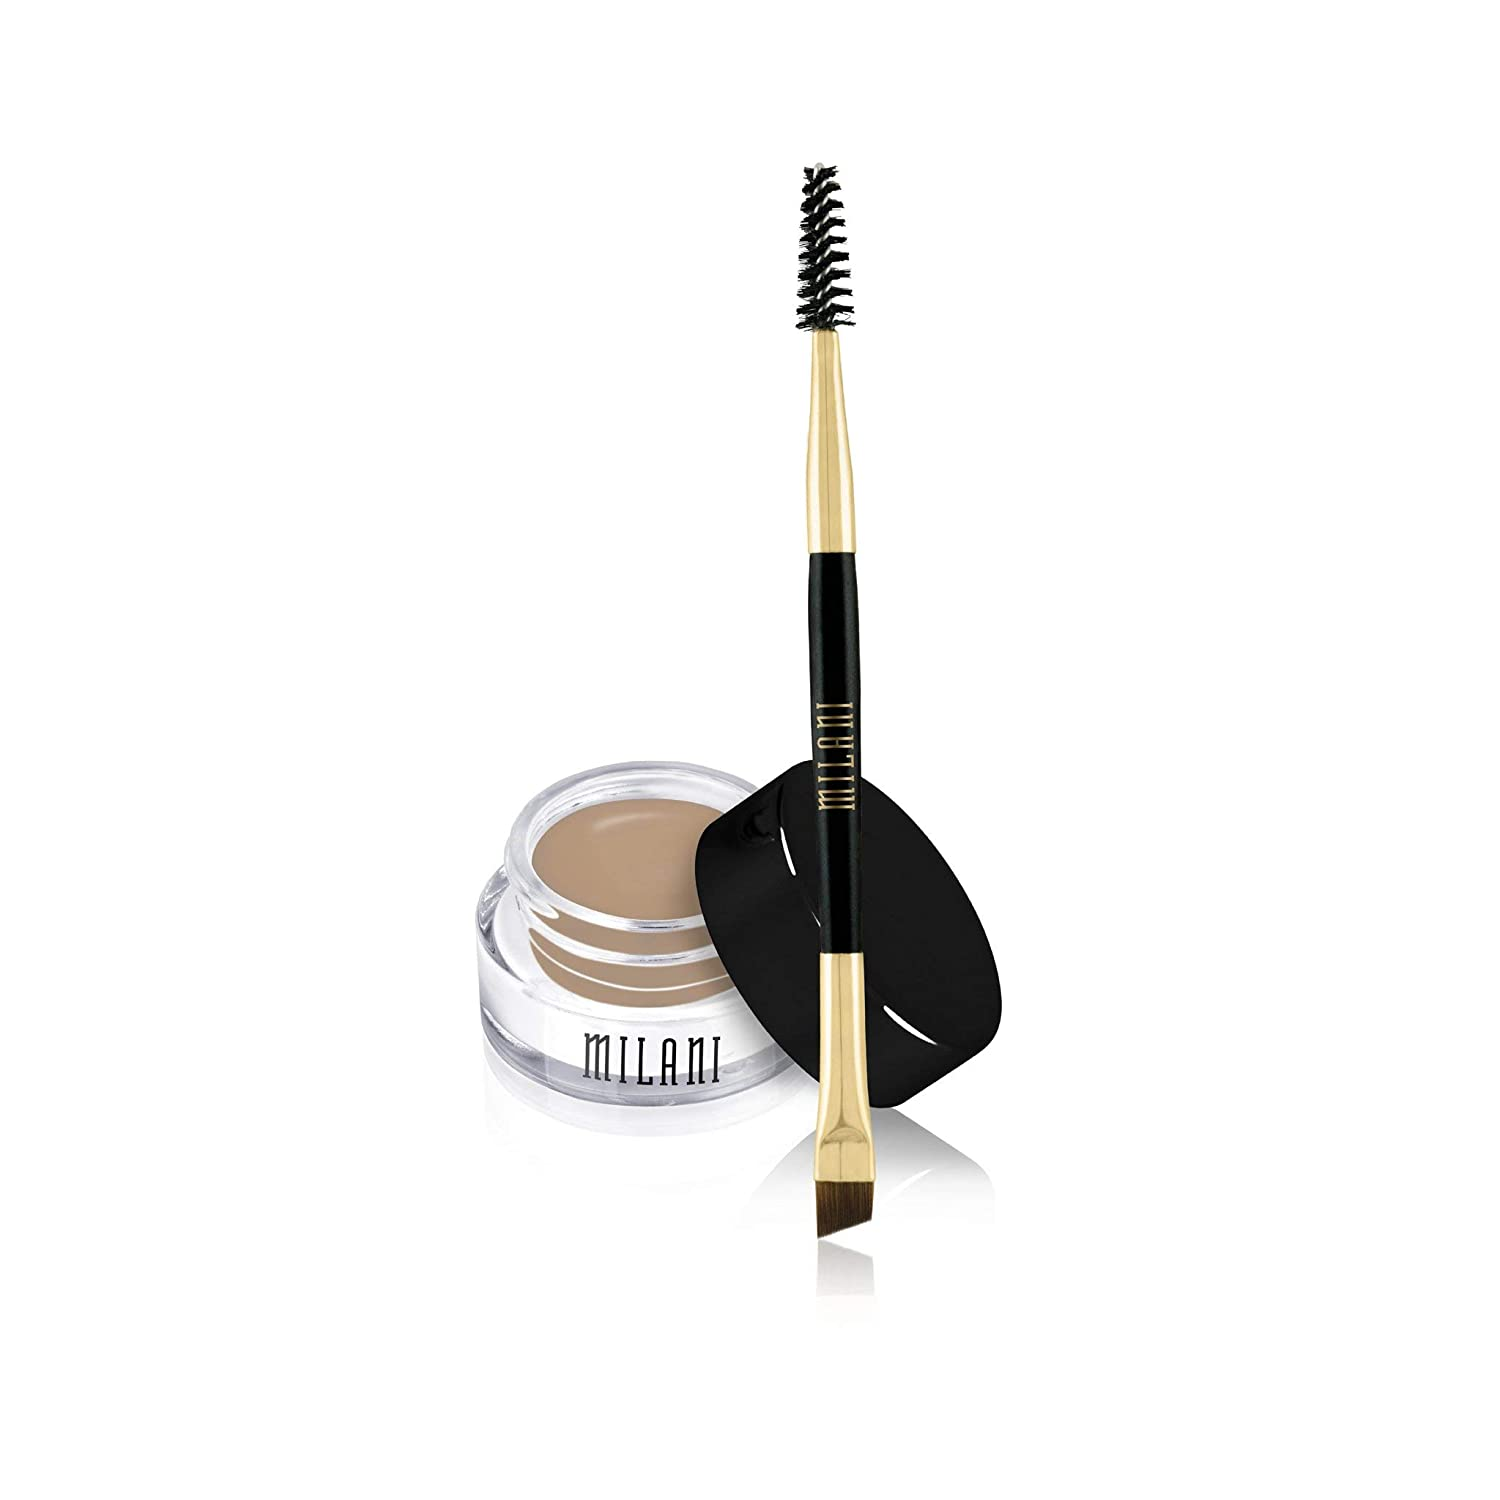 Milani Stay Put Brow Color - Natural Taupe (0.09 Ounce) Vegan, Cruelty-Free Eyebrow Color that Fills and Shapes Brows